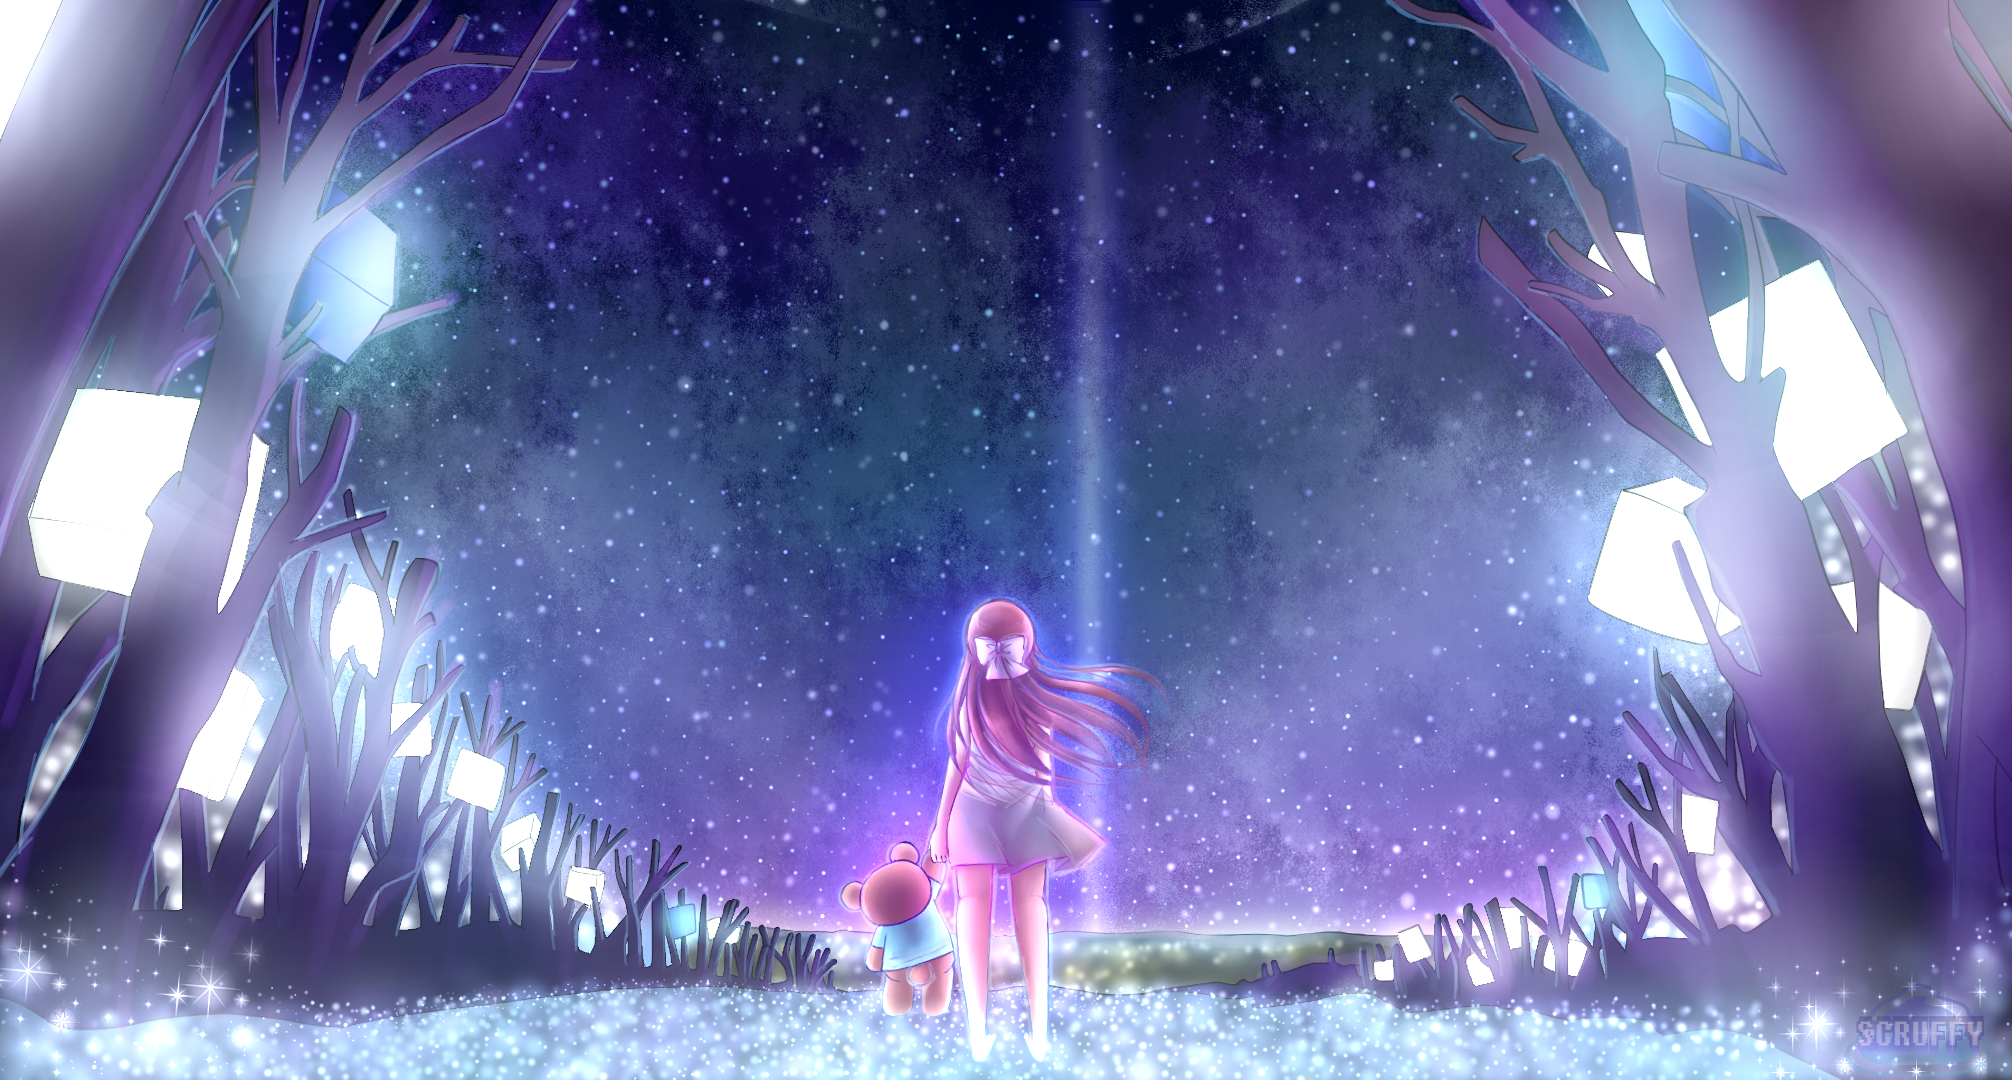 Shelter wallpapers pictures images - Anime hd wallpapers for pc ...